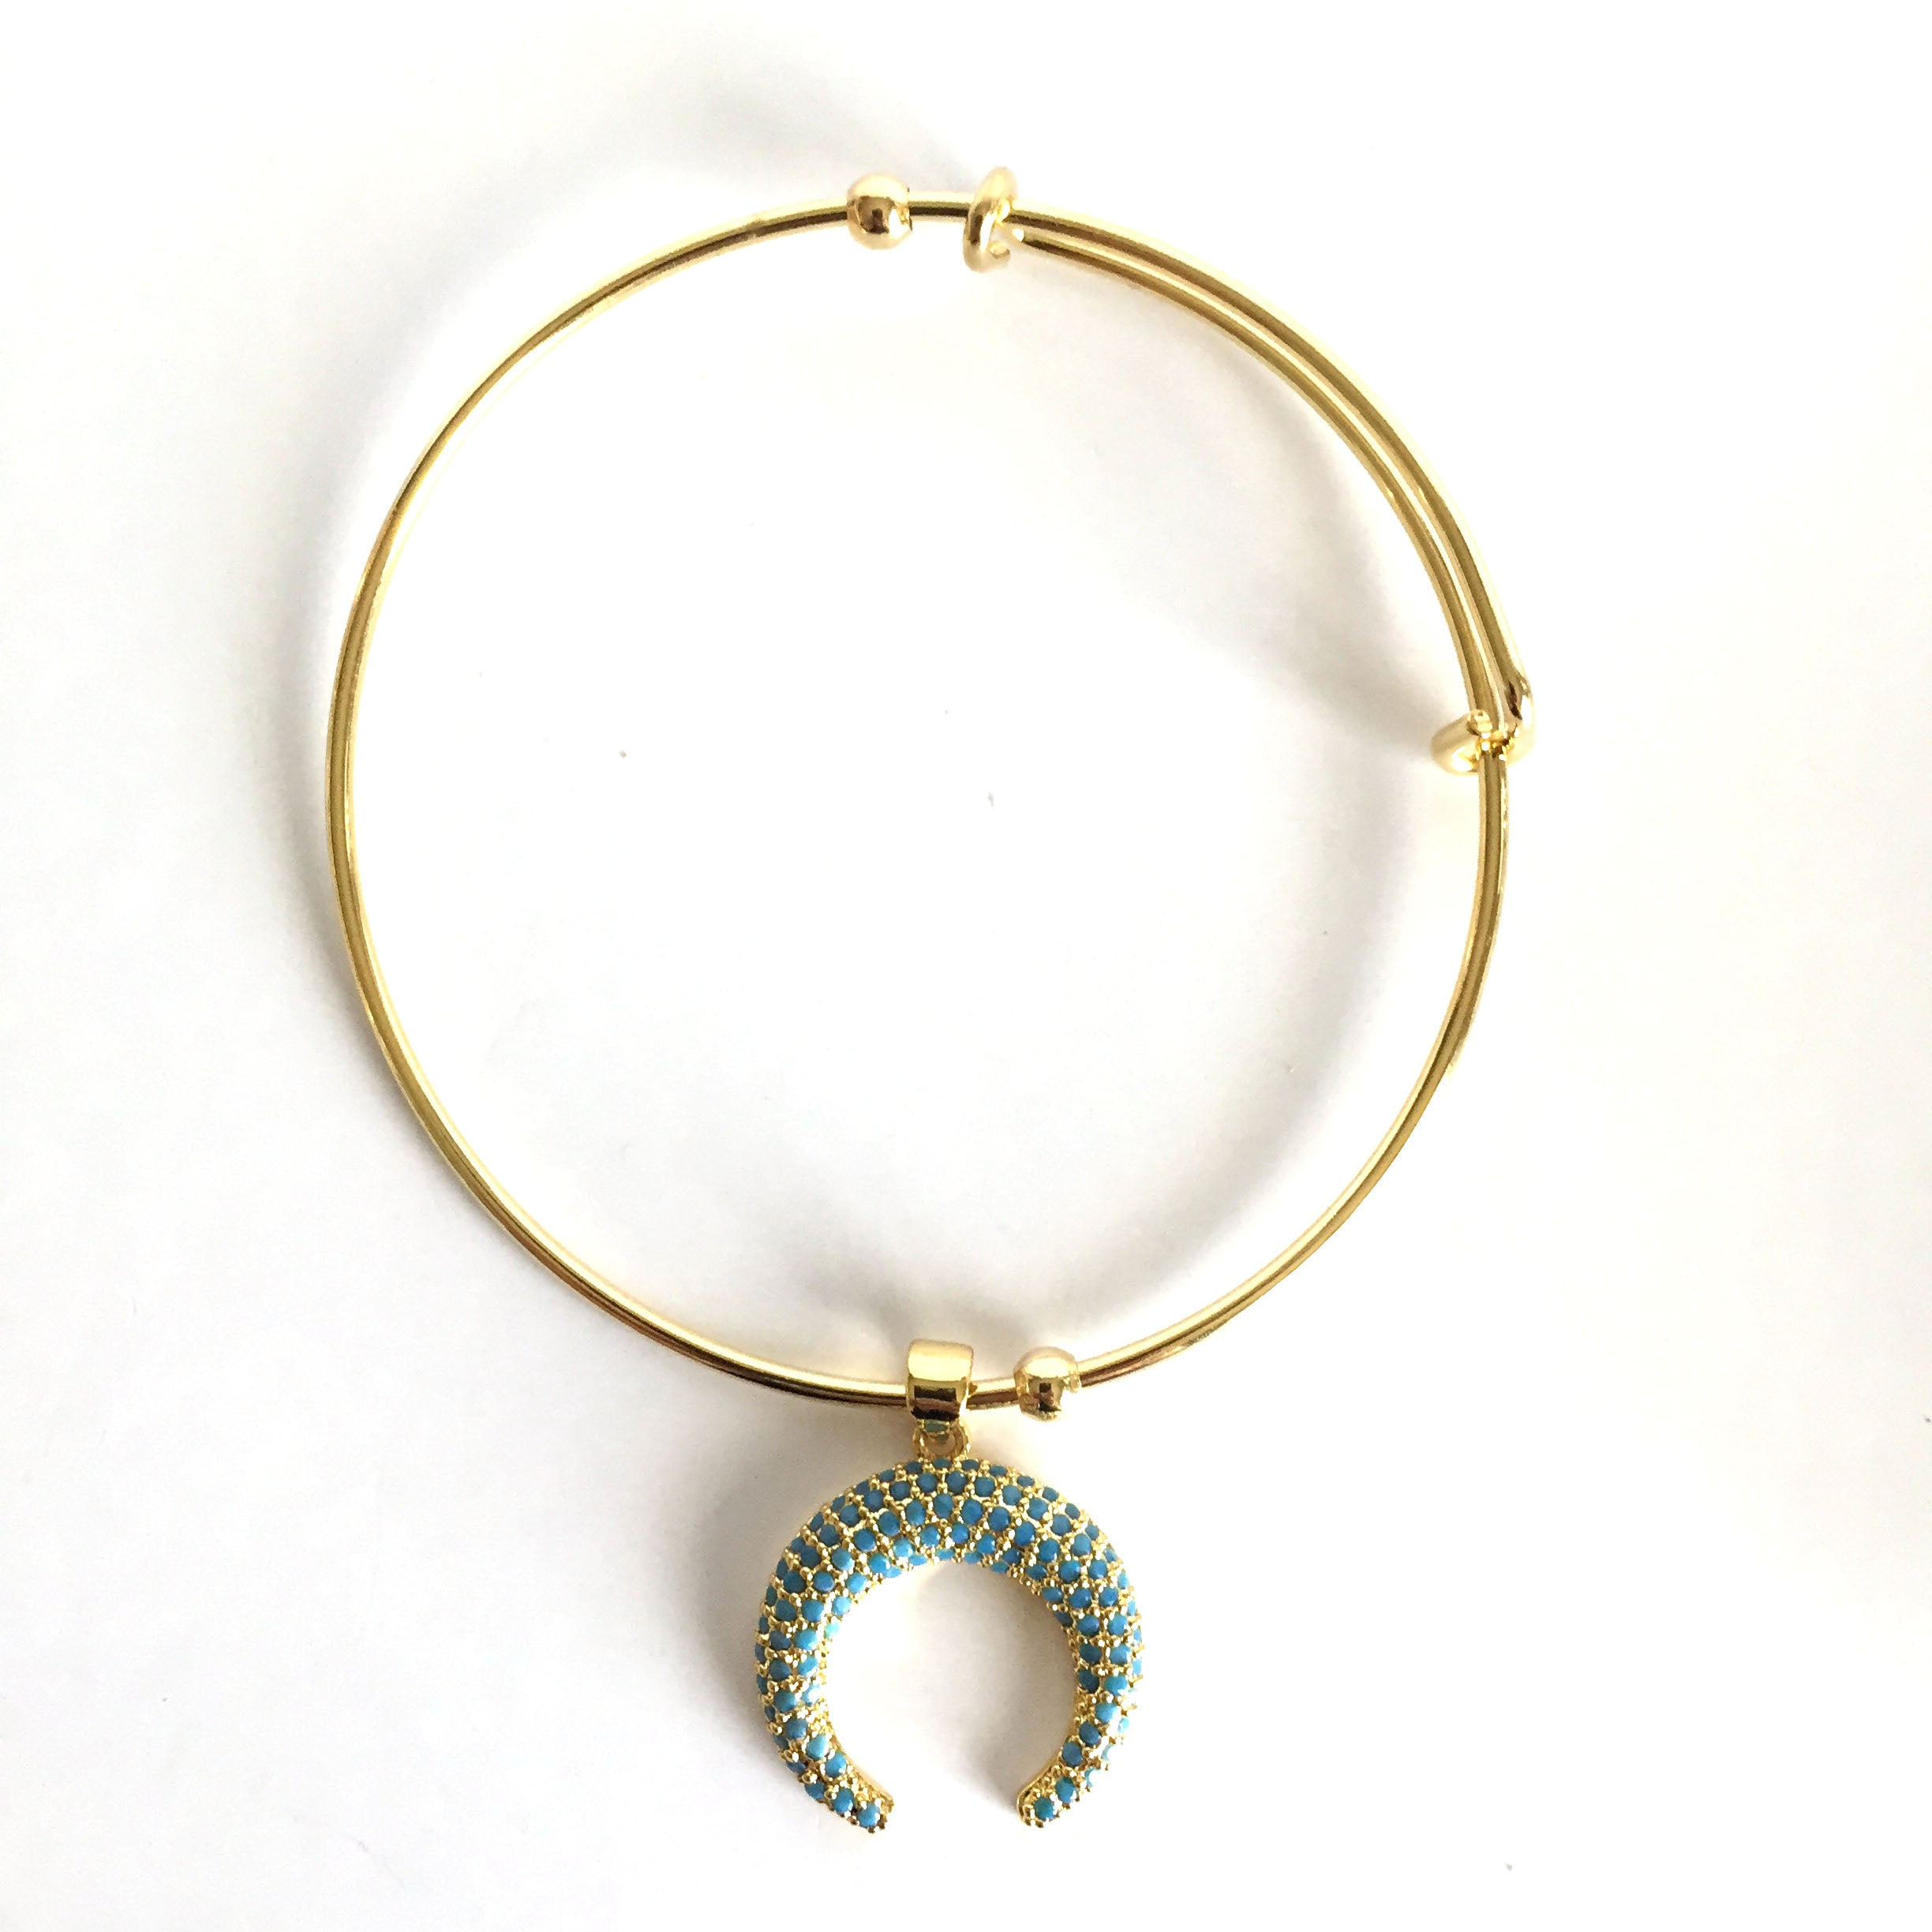 Adjustable Bangle with Pave Crescent